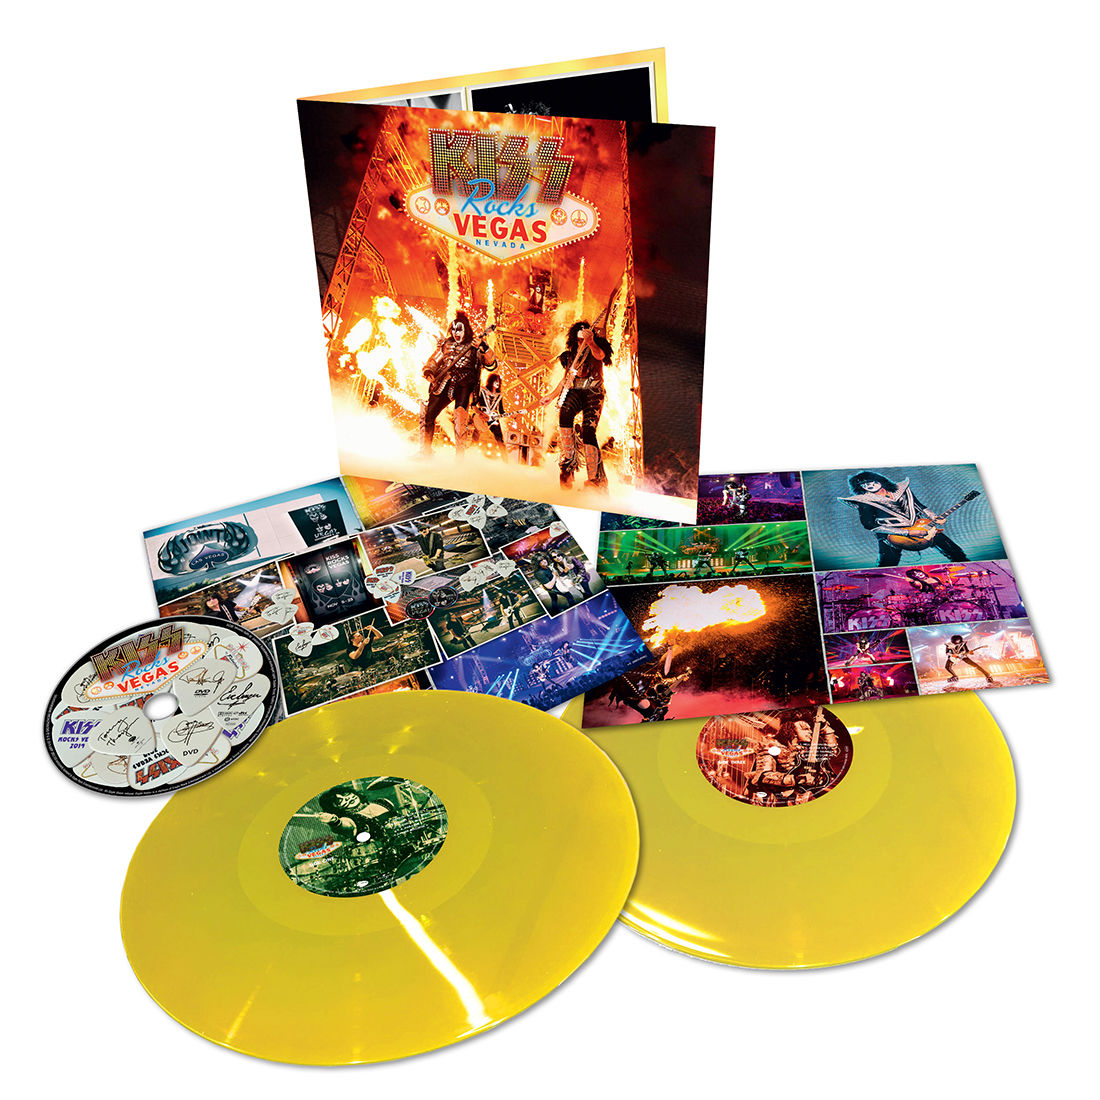 KISS - Rocks Vegas Limited Edition 2LP 180g Yellow Colour Vinyl Record Album + DVD